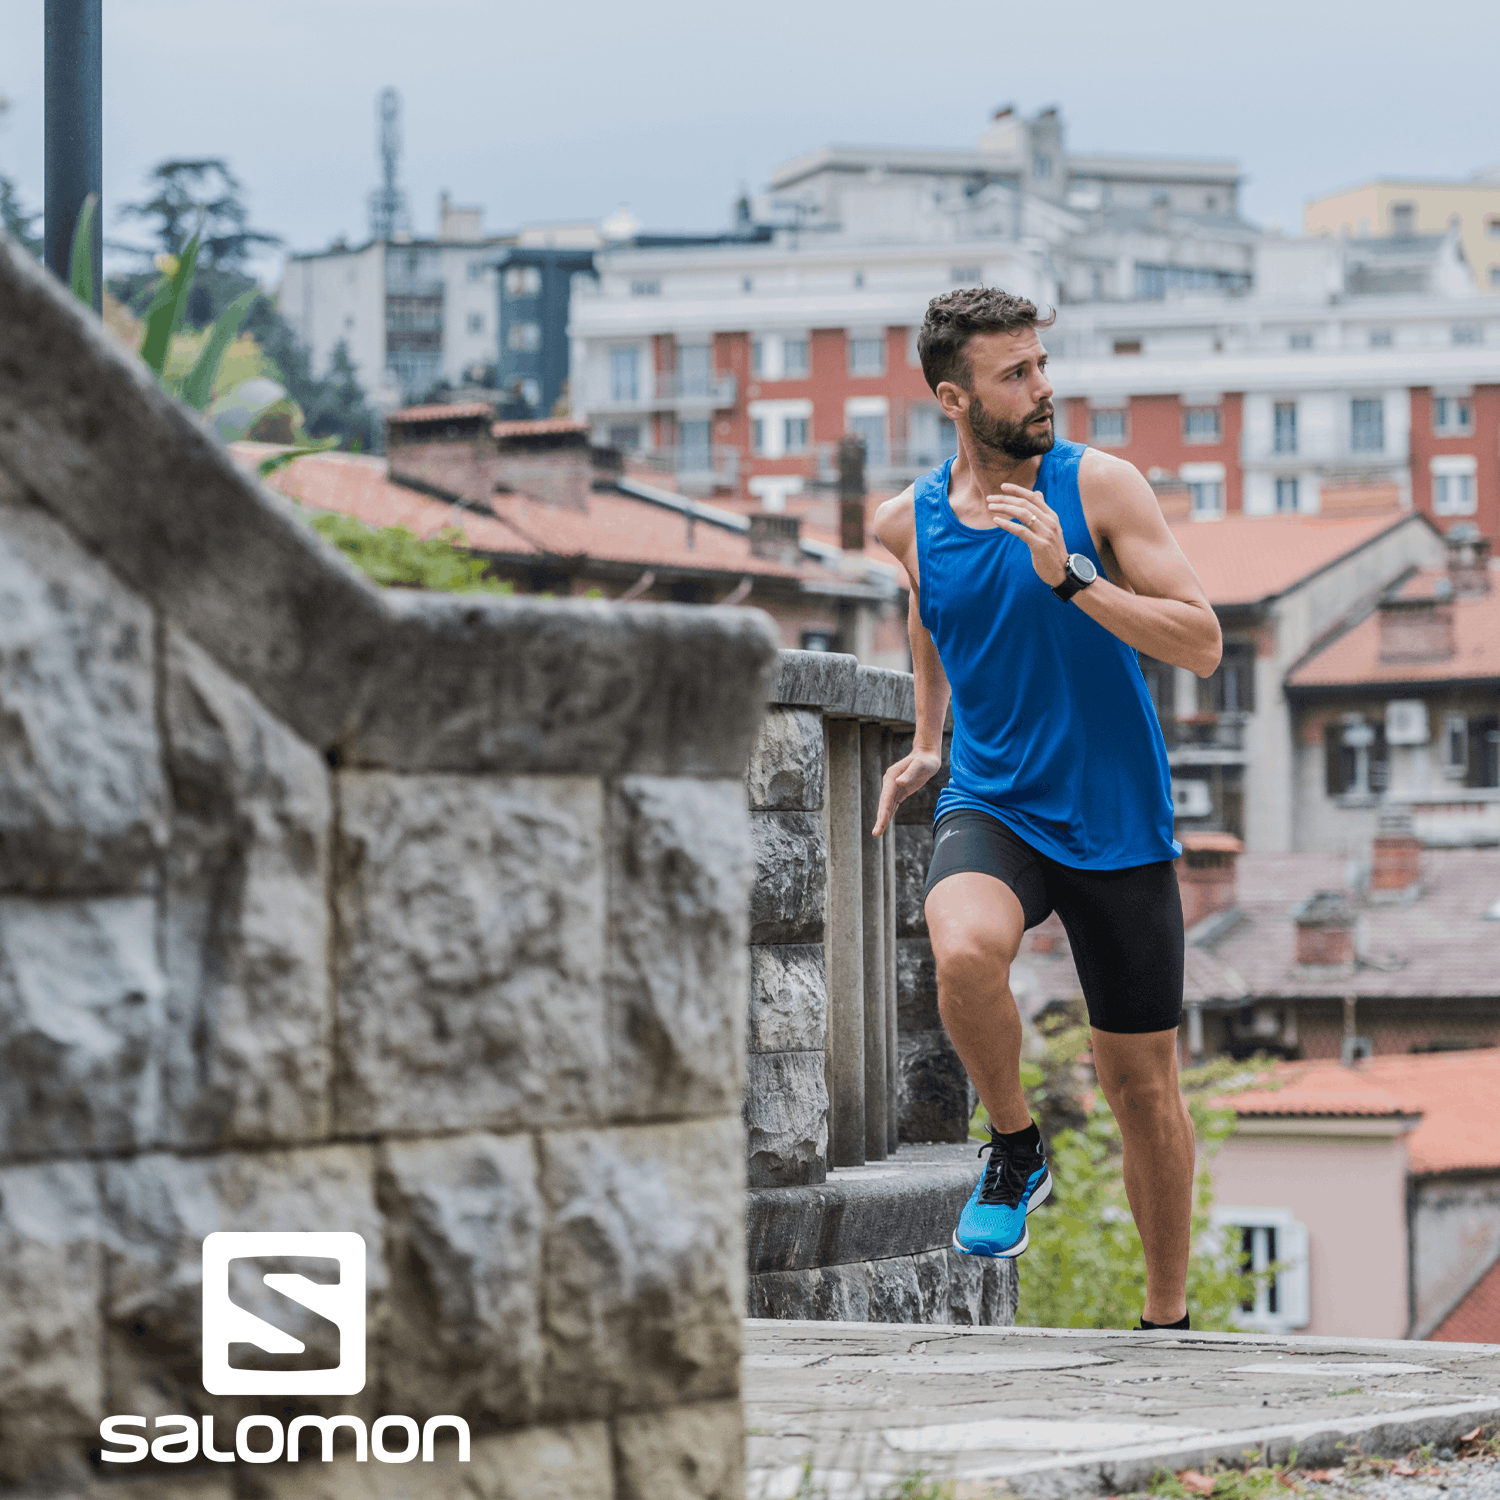 SALOMON Running Onlineshop